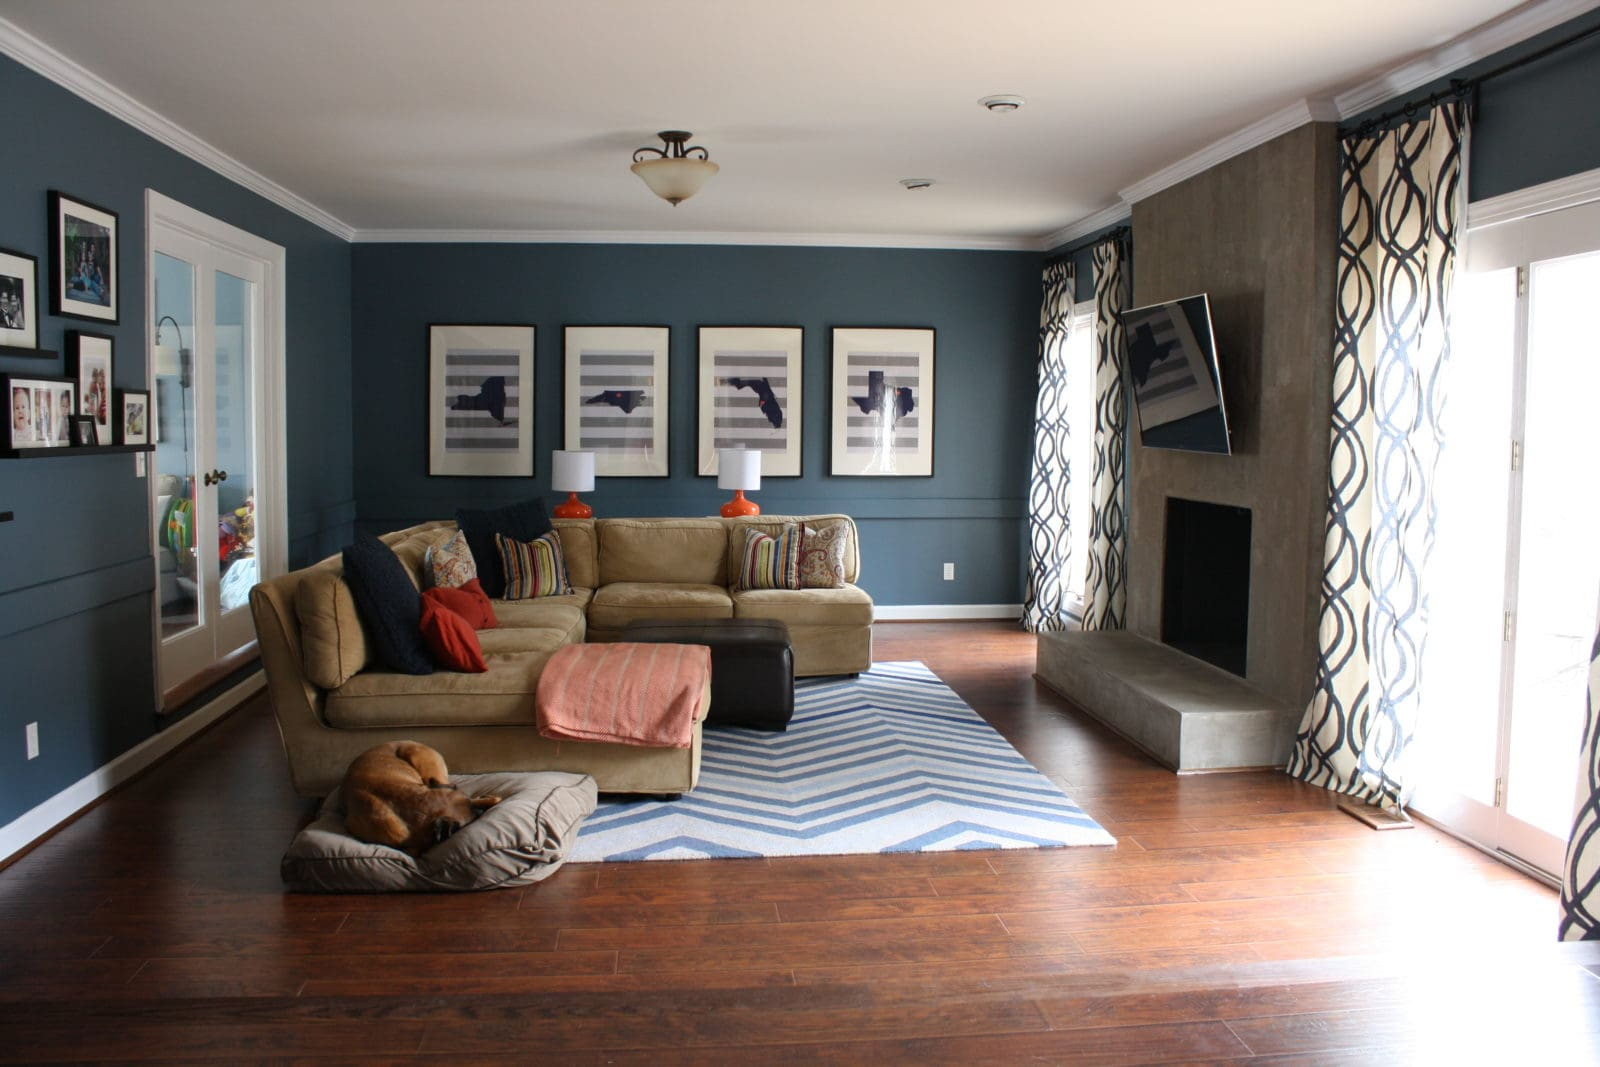 Diy family room renovation and reveal - Family room design ideas ...